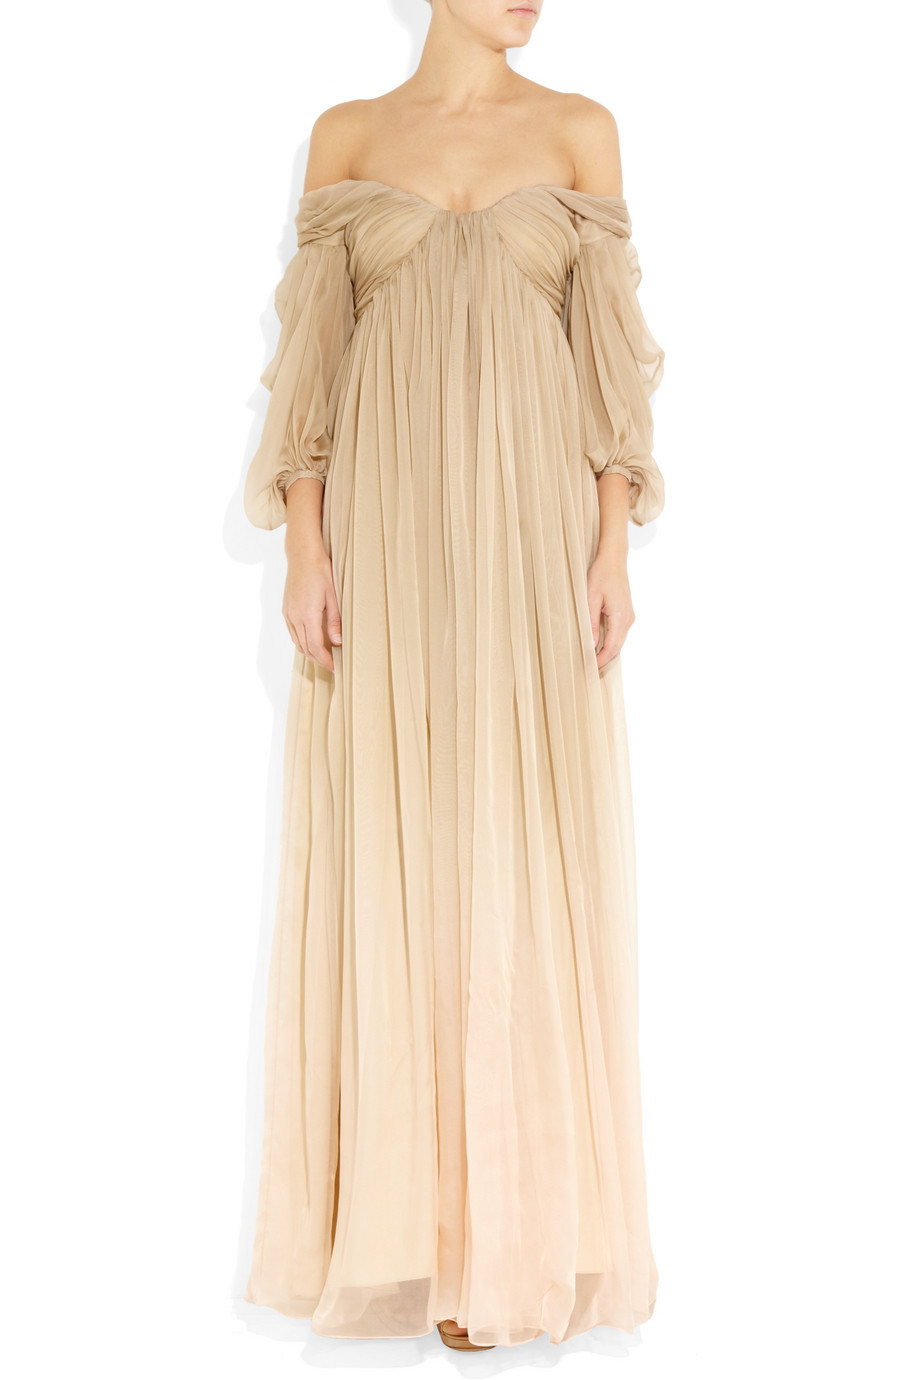 theprincessblog:  Alexander McQueen Degradé Silk-chiffon gown If anyone decides to marry me, I have my dress picked out.